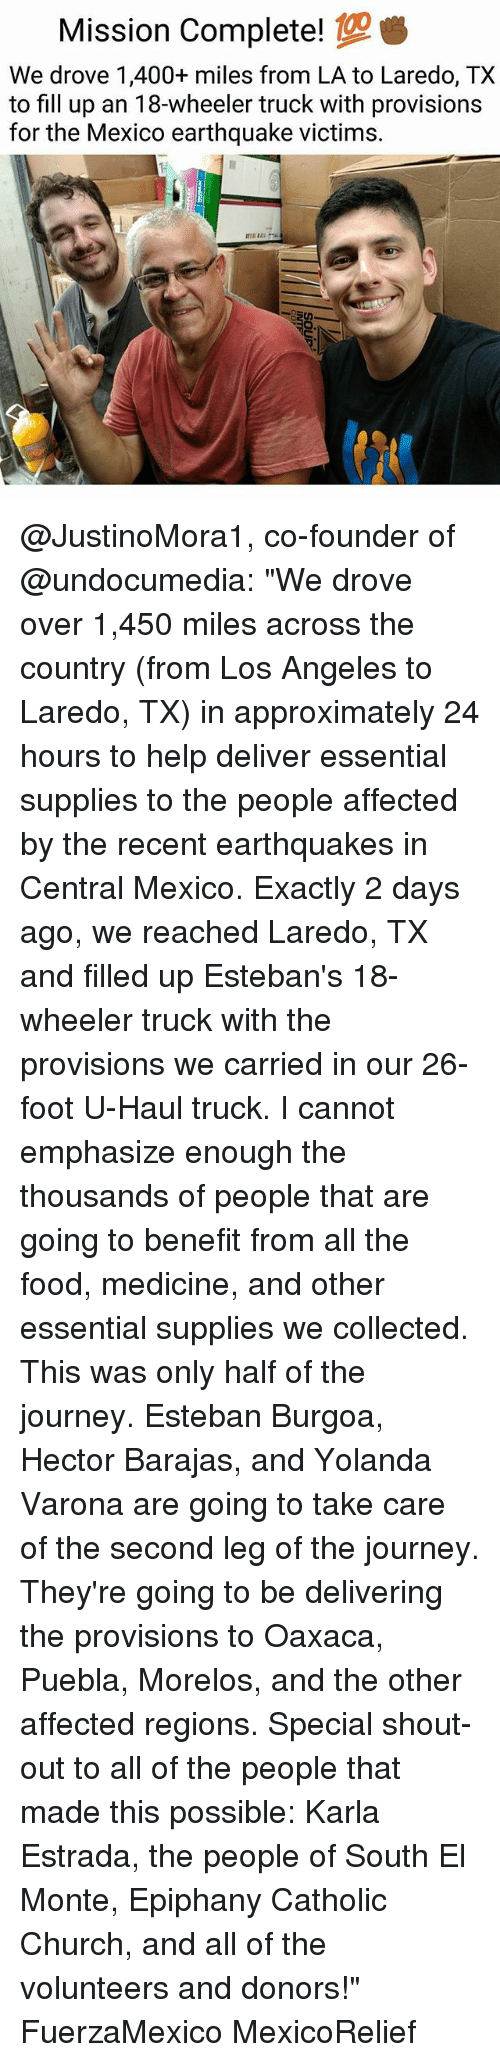 "Epiphany: Mission Complete!  We drove 1,400+ miles from LA to Laredo, TX  to fill up an 18-wheeler truck with provisions  for the Mexico earthquake victims. @JustinoMora1, co-founder of @undocumedia: ""We drove over 1,450 miles across the country (from Los Angeles to Laredo, TX) in approximately 24 hours to help deliver essential supplies to the people affected by the recent earthquakes in Central Mexico. Exactly 2 days ago, we reached Laredo, TX and filled up Esteban's 18-wheeler truck with the provisions we carried in our 26-foot U-Haul truck. I cannot emphasize enough the thousands of people that are going to benefit from all the food, medicine, and other essential supplies we collected. This was only half of the journey. Esteban Burgoa, Hector Barajas, and Yolanda Varona are going to take care of the second leg of the journey. They're going to be delivering the provisions to Oaxaca, Puebla, Morelos, and the other affected regions. Special shout-out to all of the people that made this possible: Karla Estrada, the people of South El Monte, Epiphany Catholic Church, and all of the volunteers and donors!"" FuerzaMexico MexicoRelief"